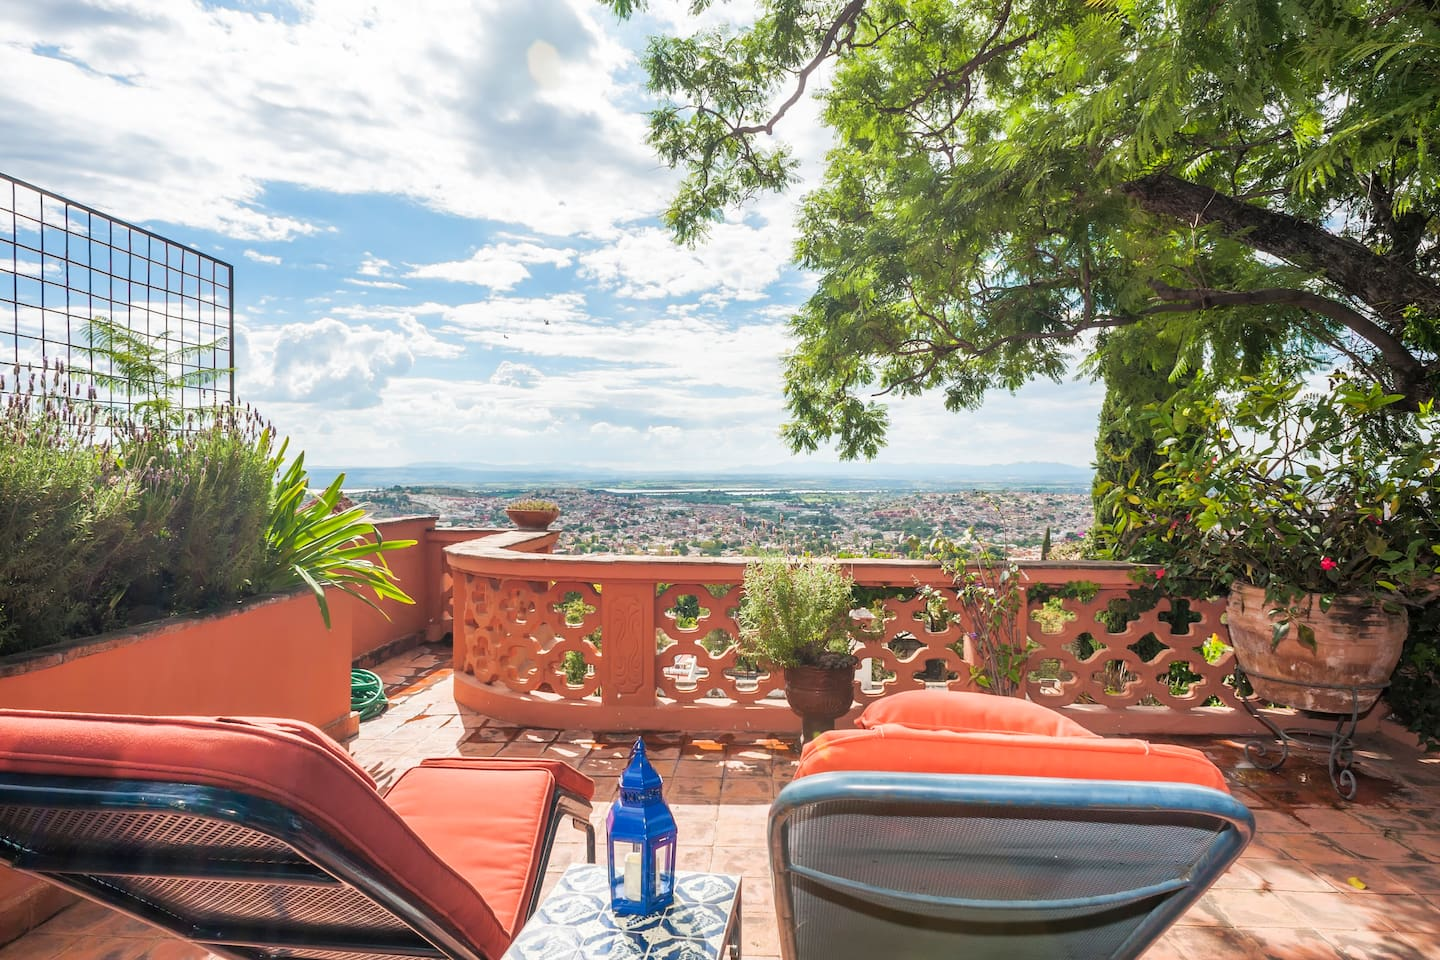 Casita Ruby has a sweeping view of the city